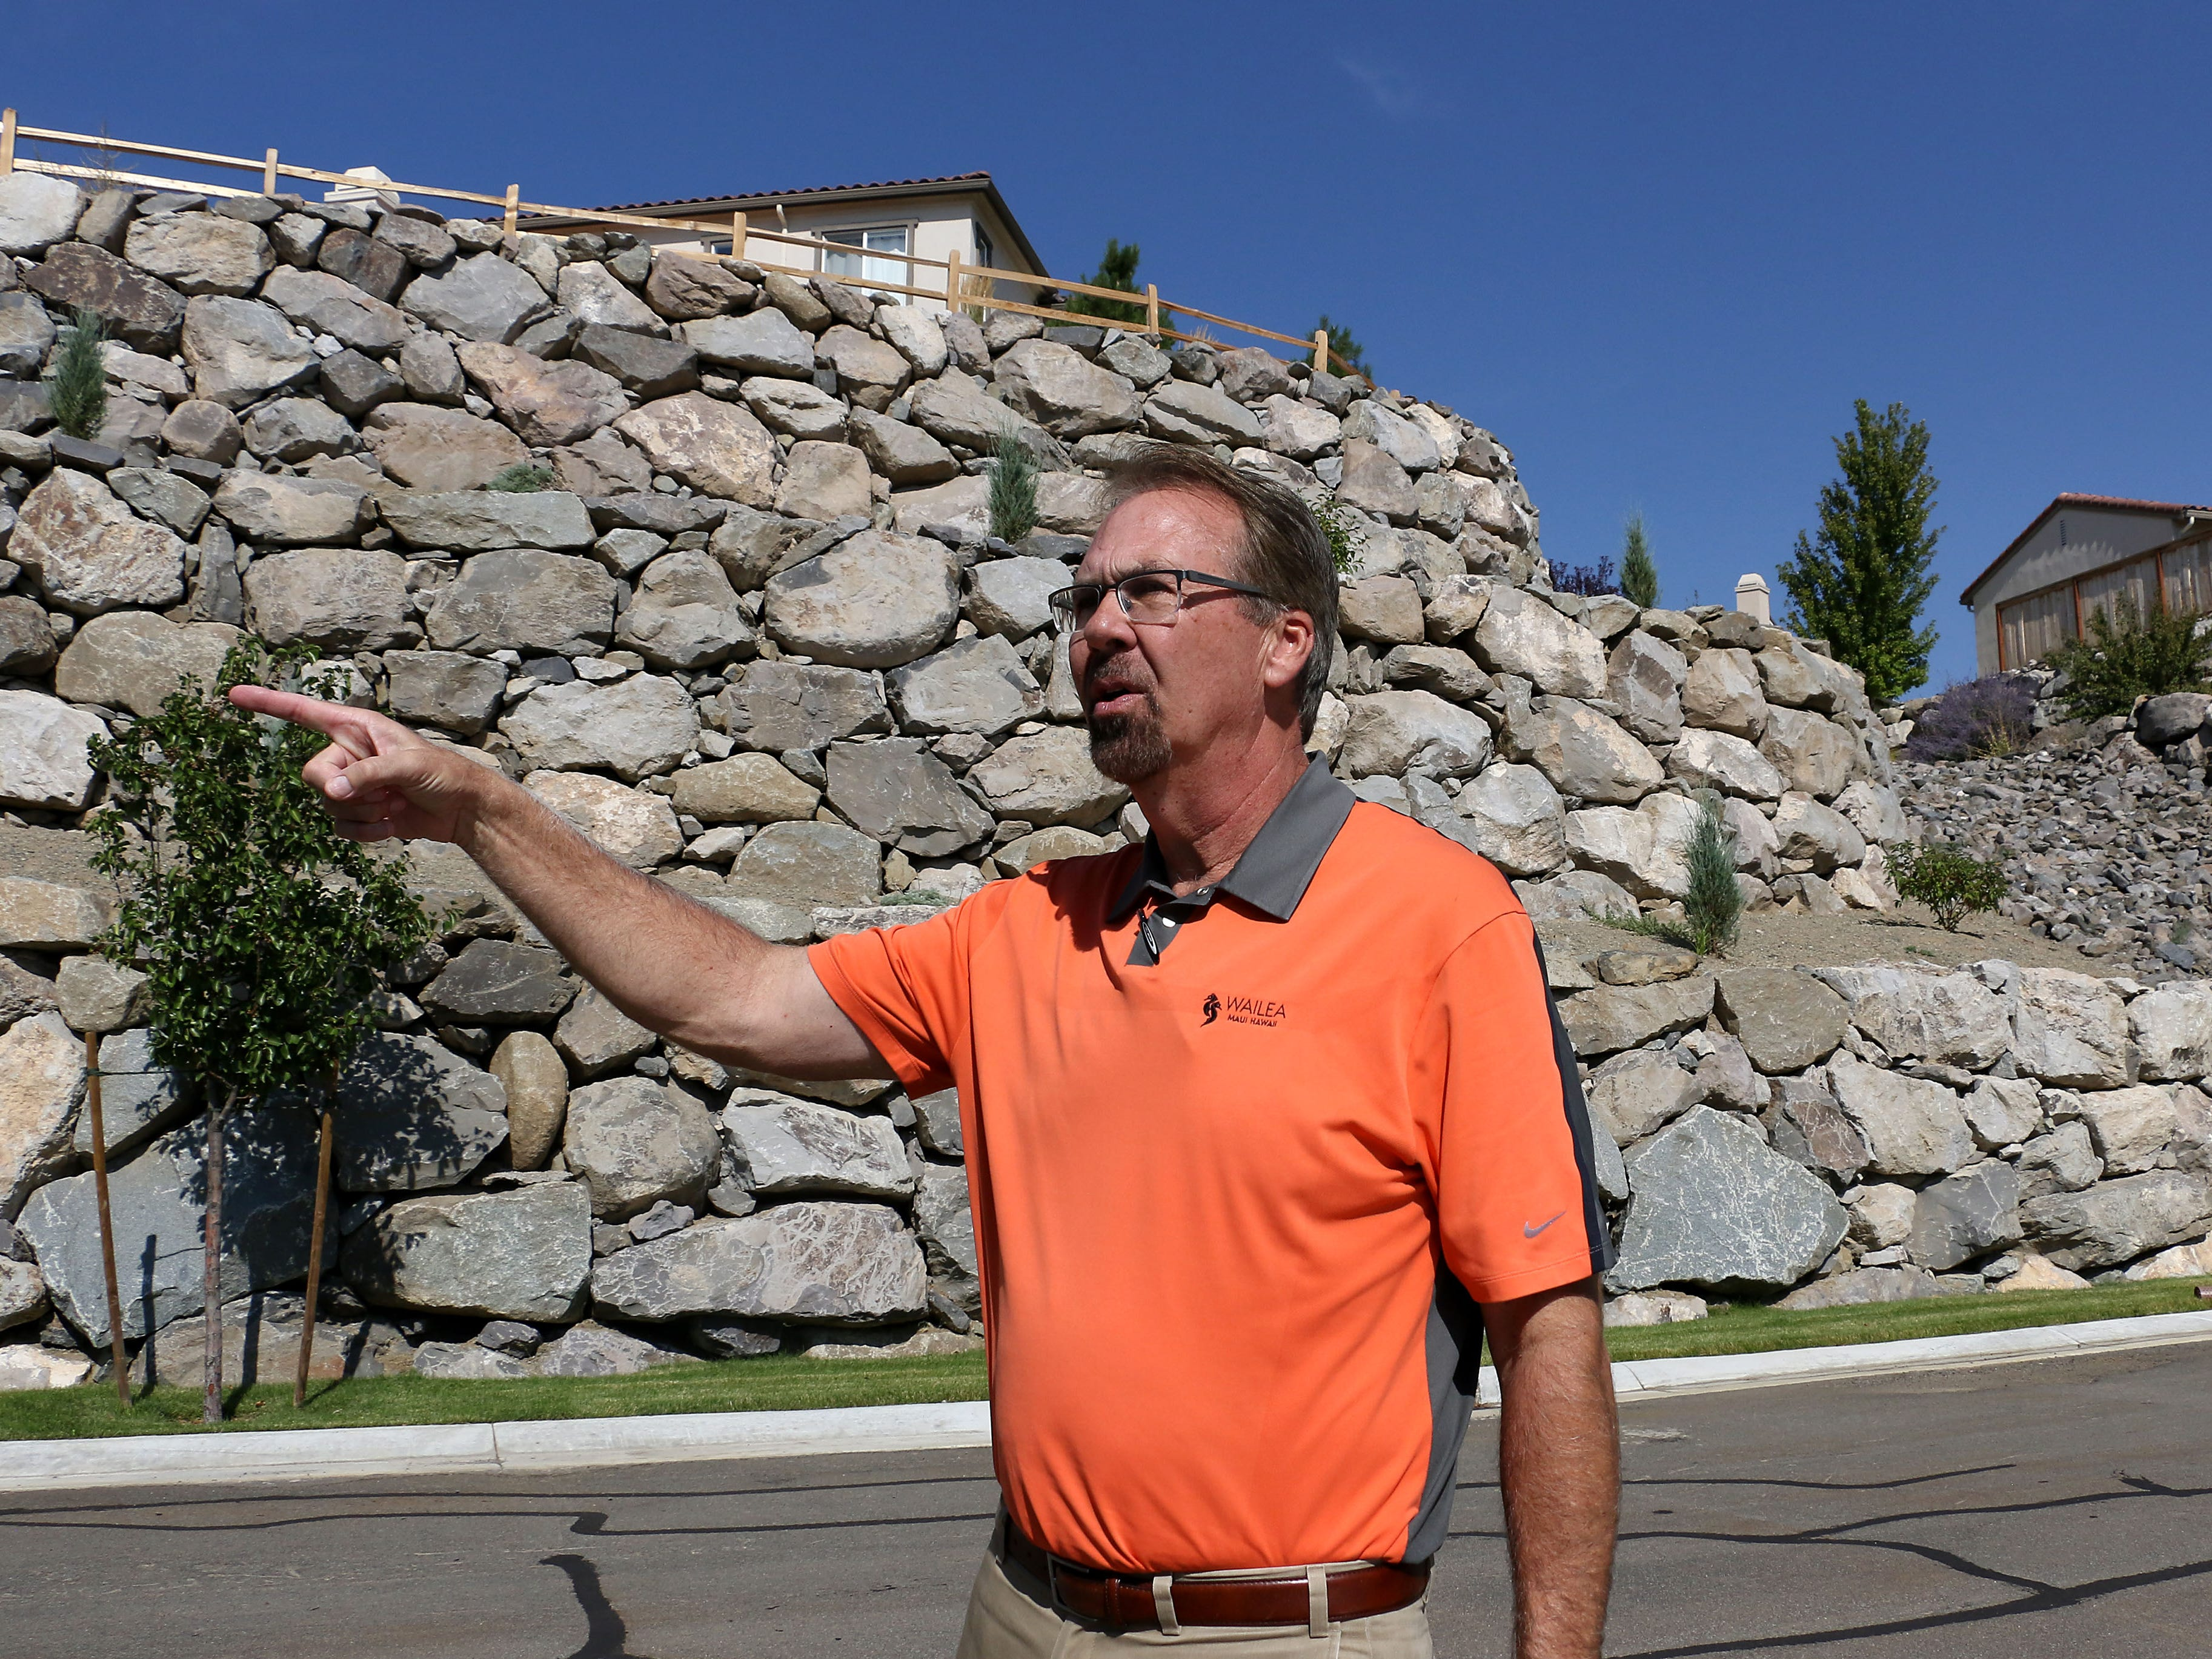 Real estate agent Dave Hughes shows the RGJ a rock wall in the Somersett master planned community in Reno on Aug. 29, 2018.